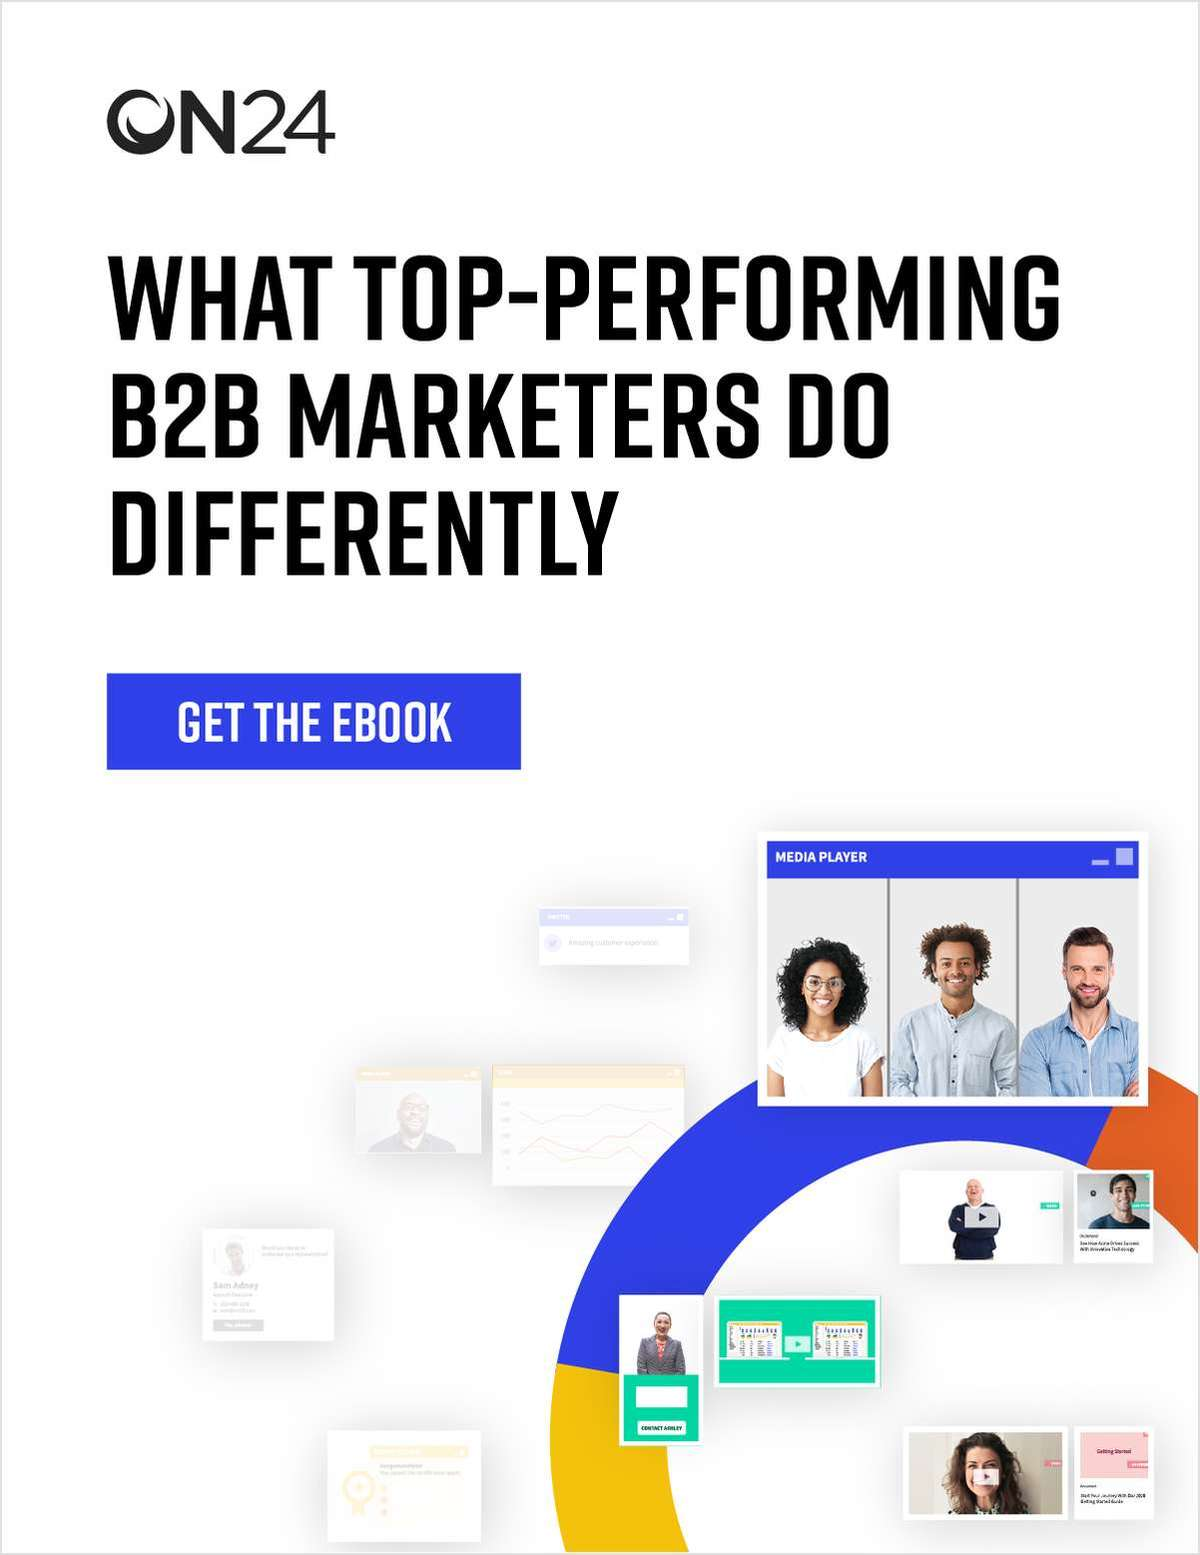 Transform Your Marketing: Learn What Top-Performing B2B Marketers Do Differently